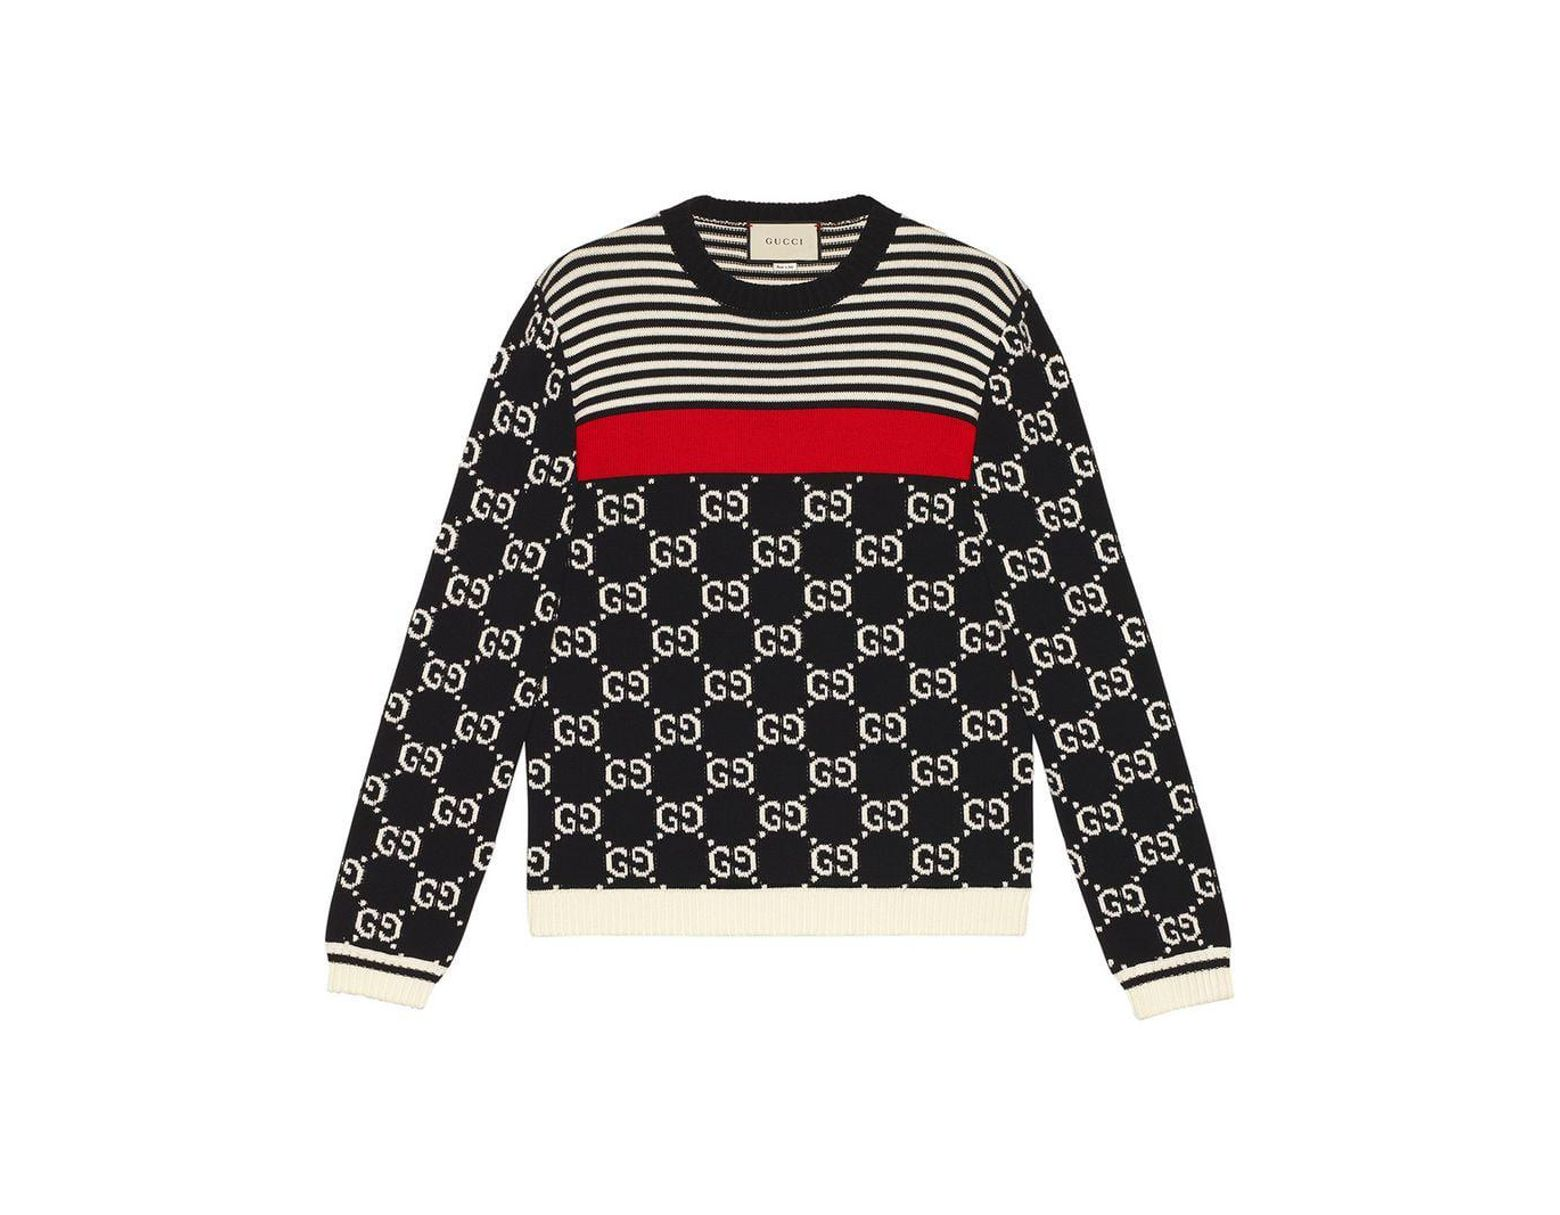 a8953458750 Gucci GG And Stripes Knit Sweater in Blue for Men - Lyst